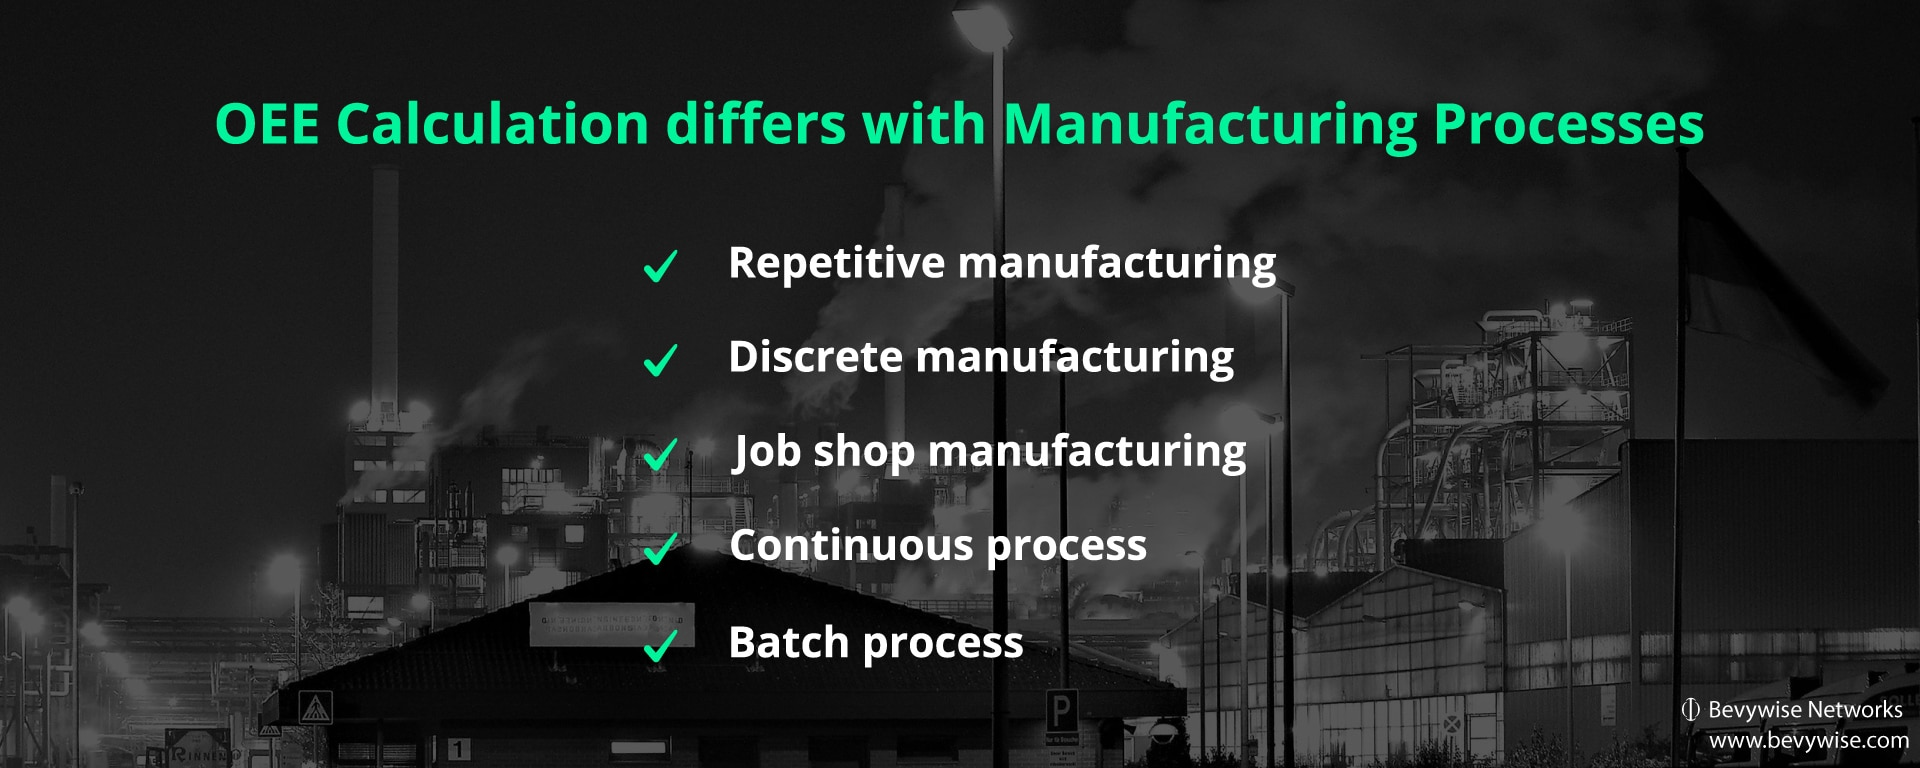 OEE calculation differs with manufacturing process